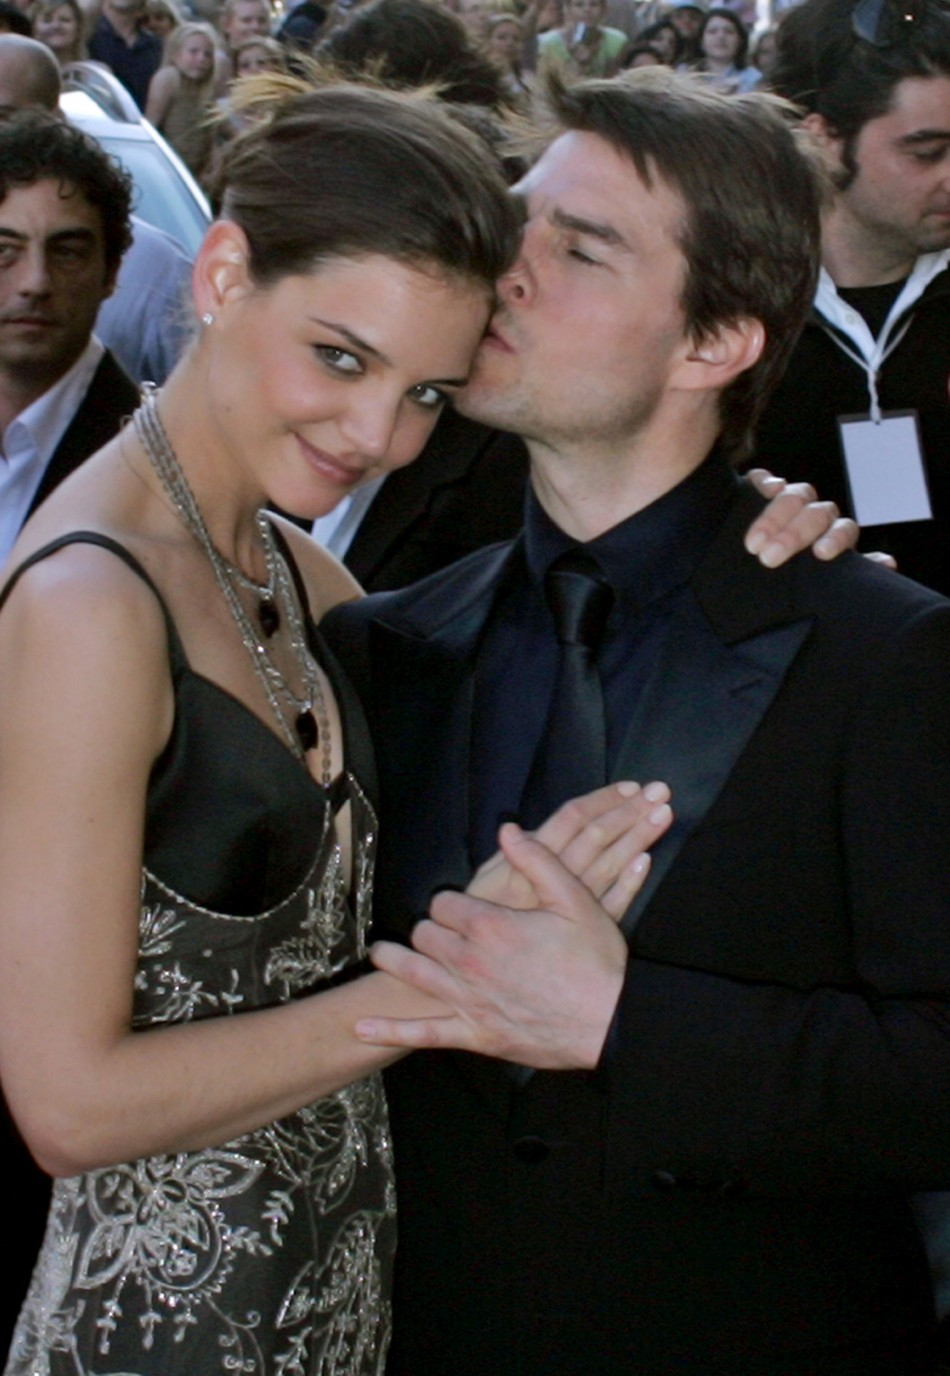 US actor Tom Cruise arrives for awards ceremony with new girlfriend US actress Katie Holmes in Rome